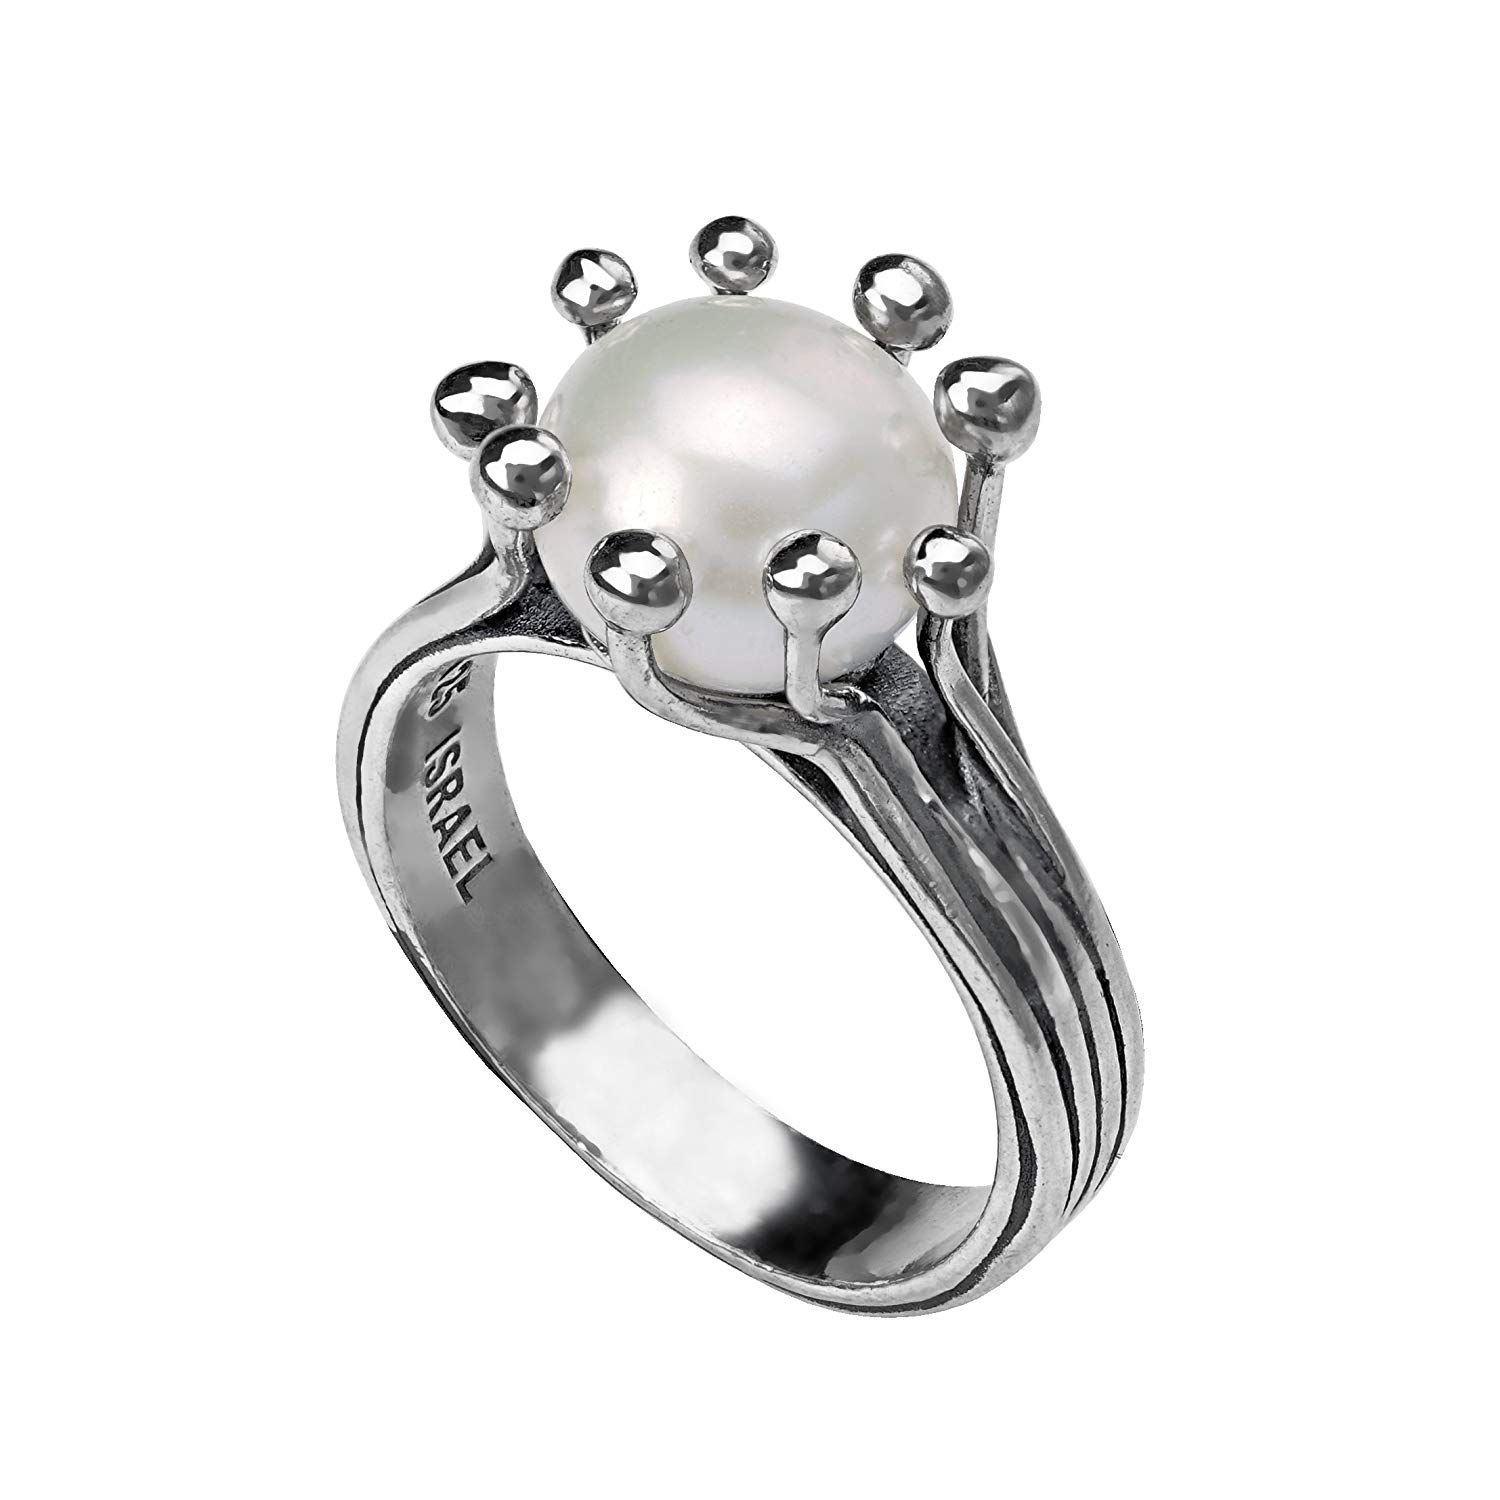 PZ Paz Creations 925 Sterling Silver 10MM Classic White Natural Freshwater Cultured Pearl Ring for Women